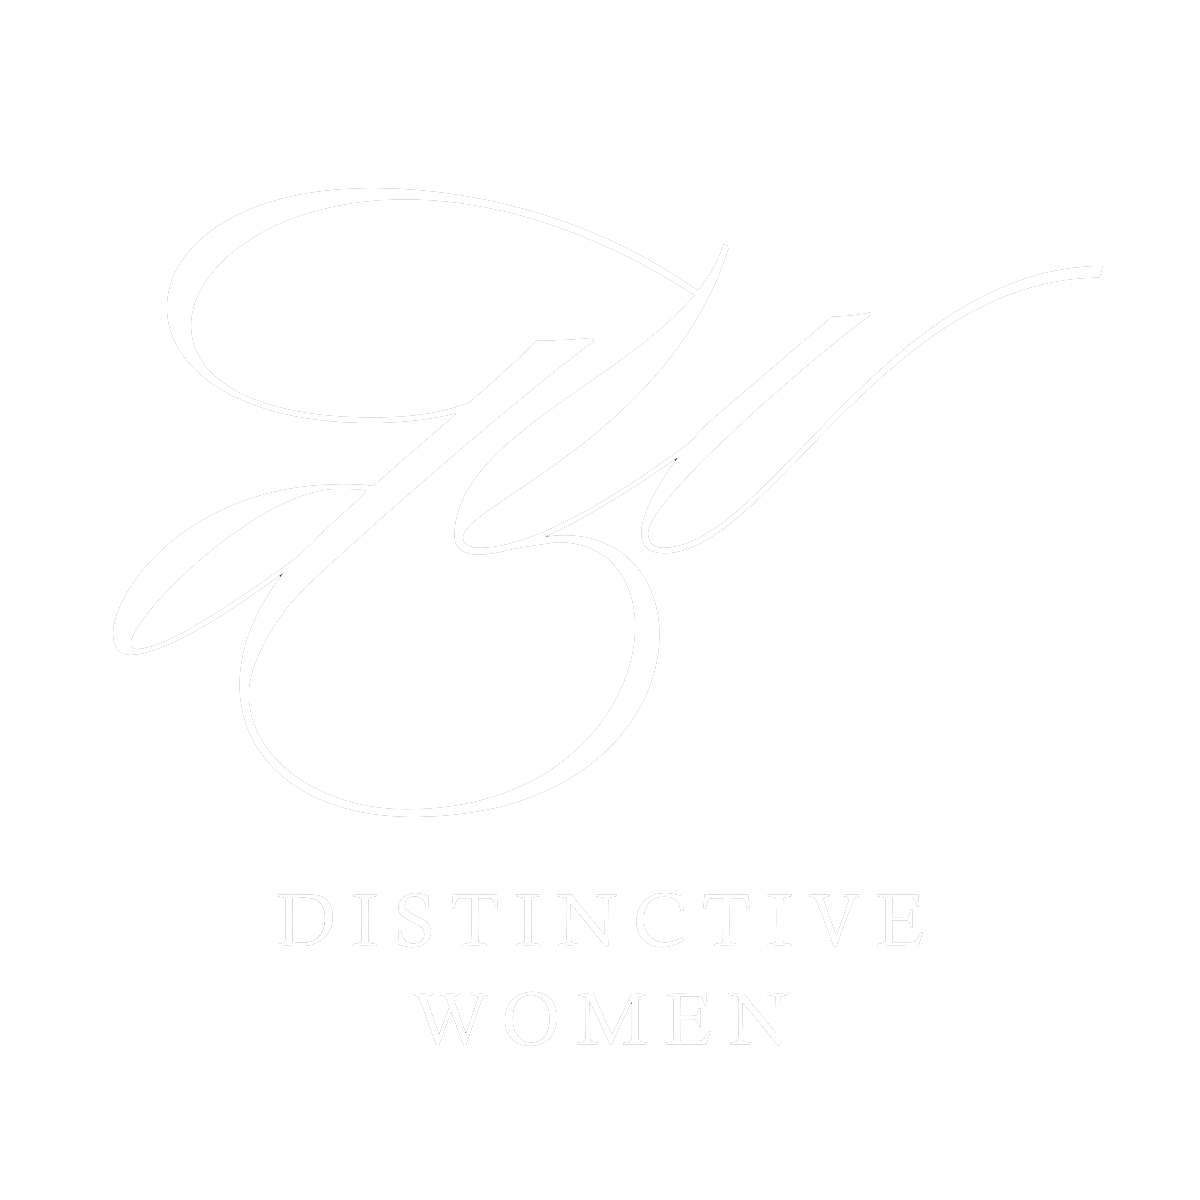 DistinctiveWomen